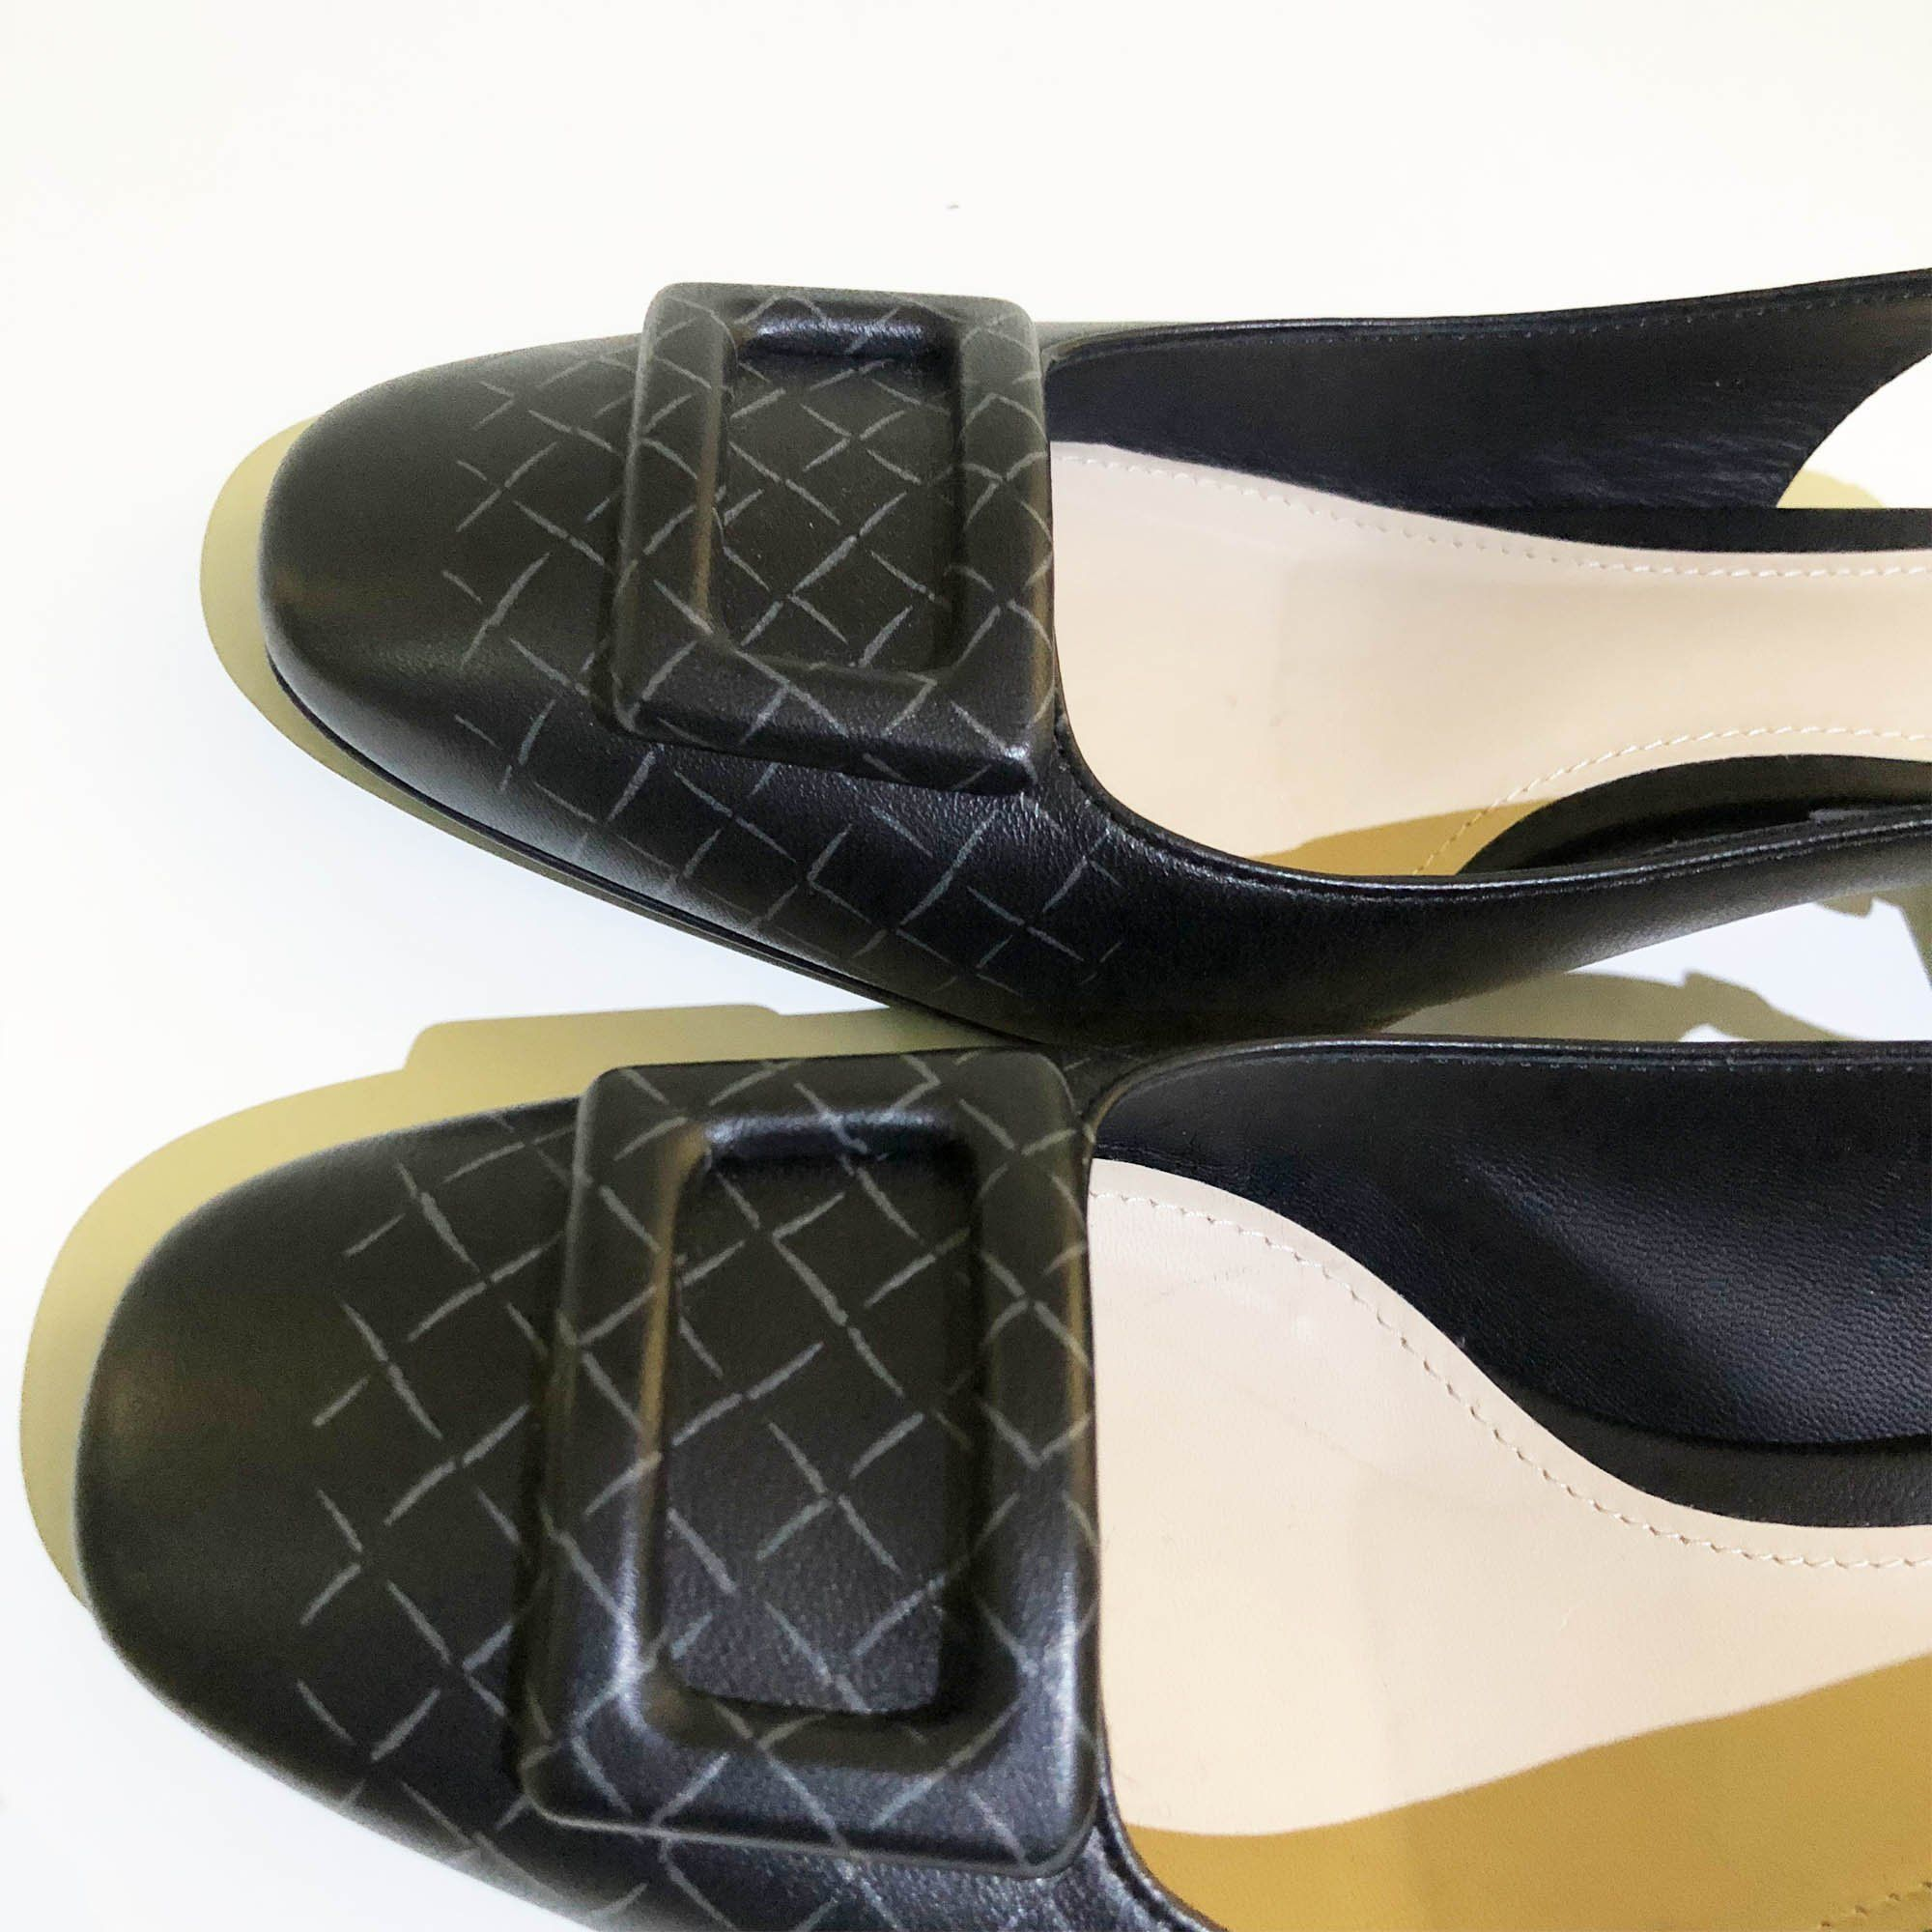 Bottega Veneta Cherbourg Intrecciato-Print leather pumps